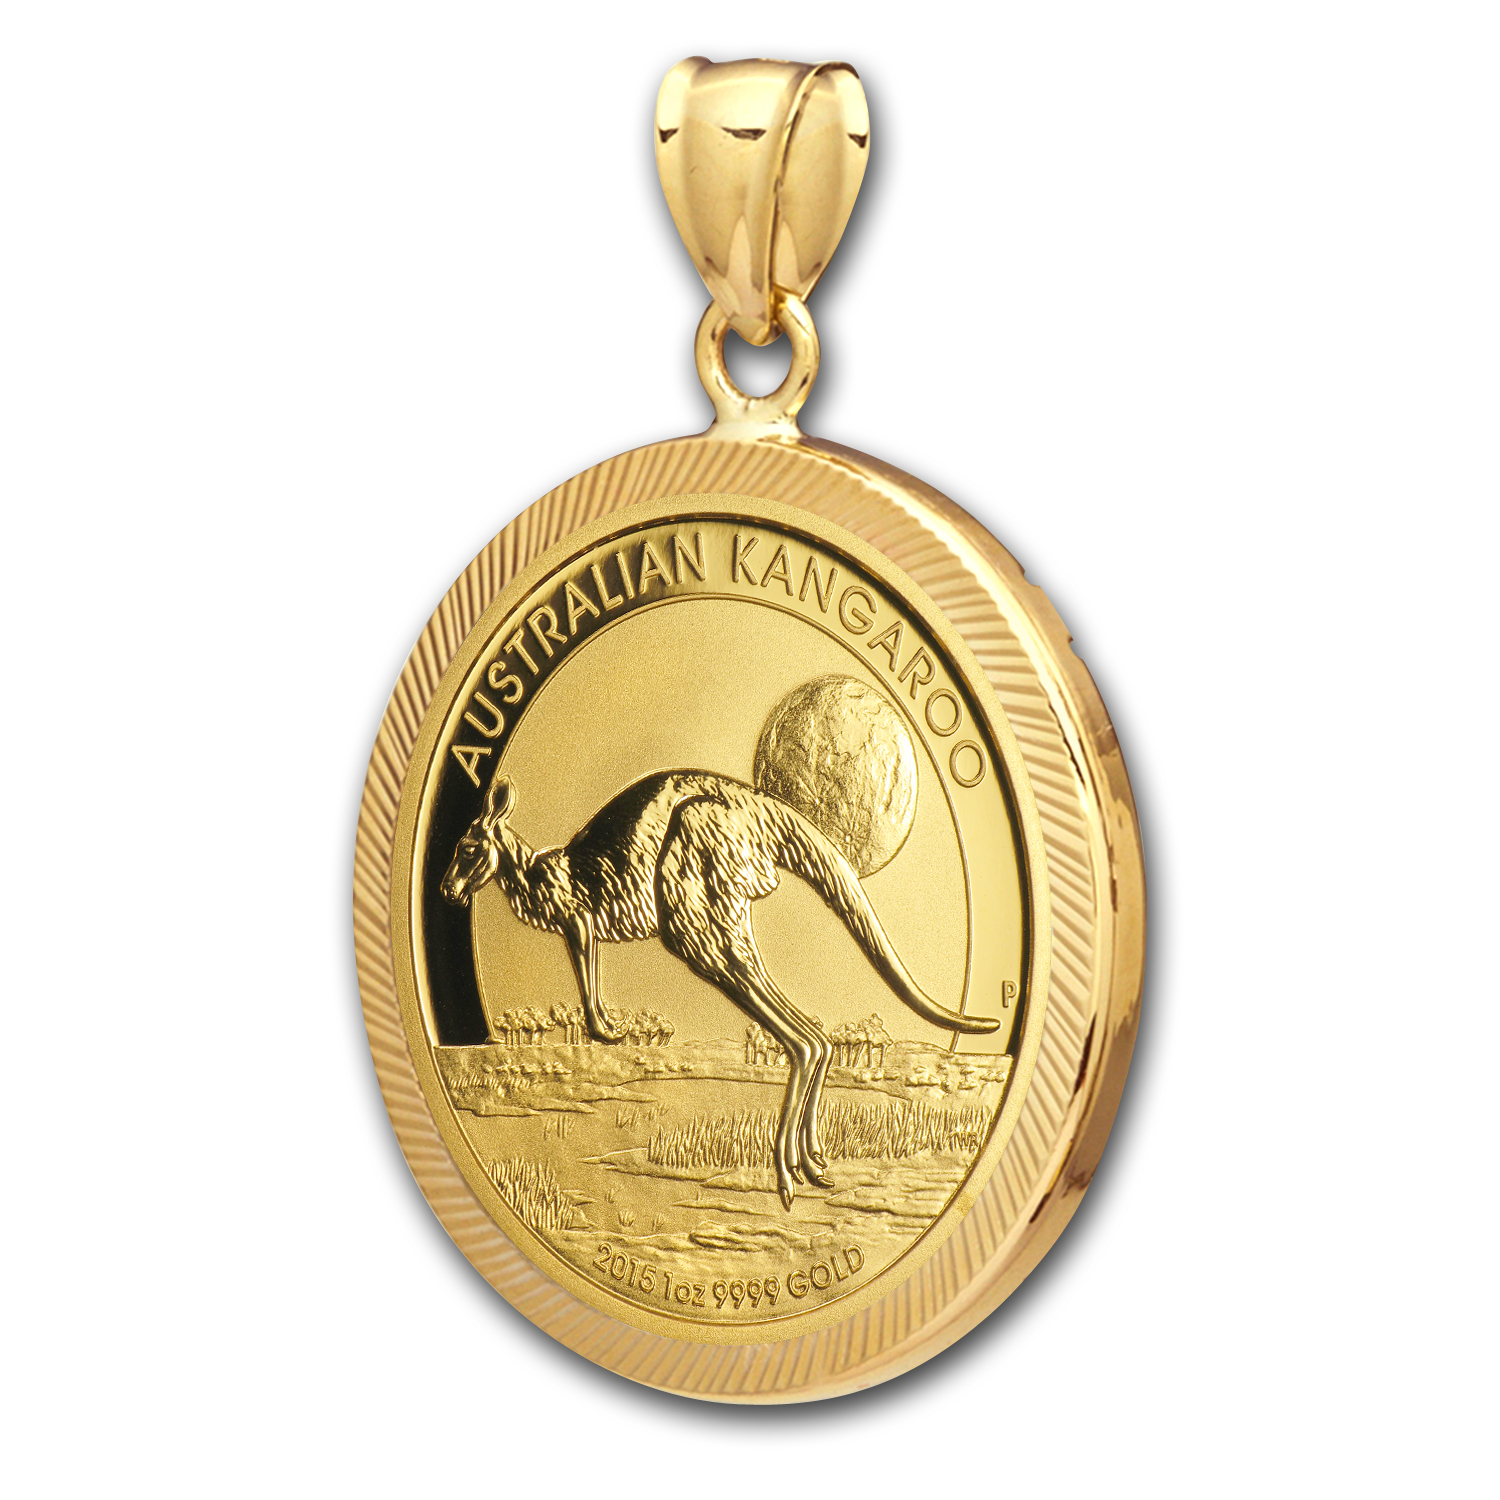 2014 1 oz Gold Kangaroo Pendant (Diamond-Prong Bezel)